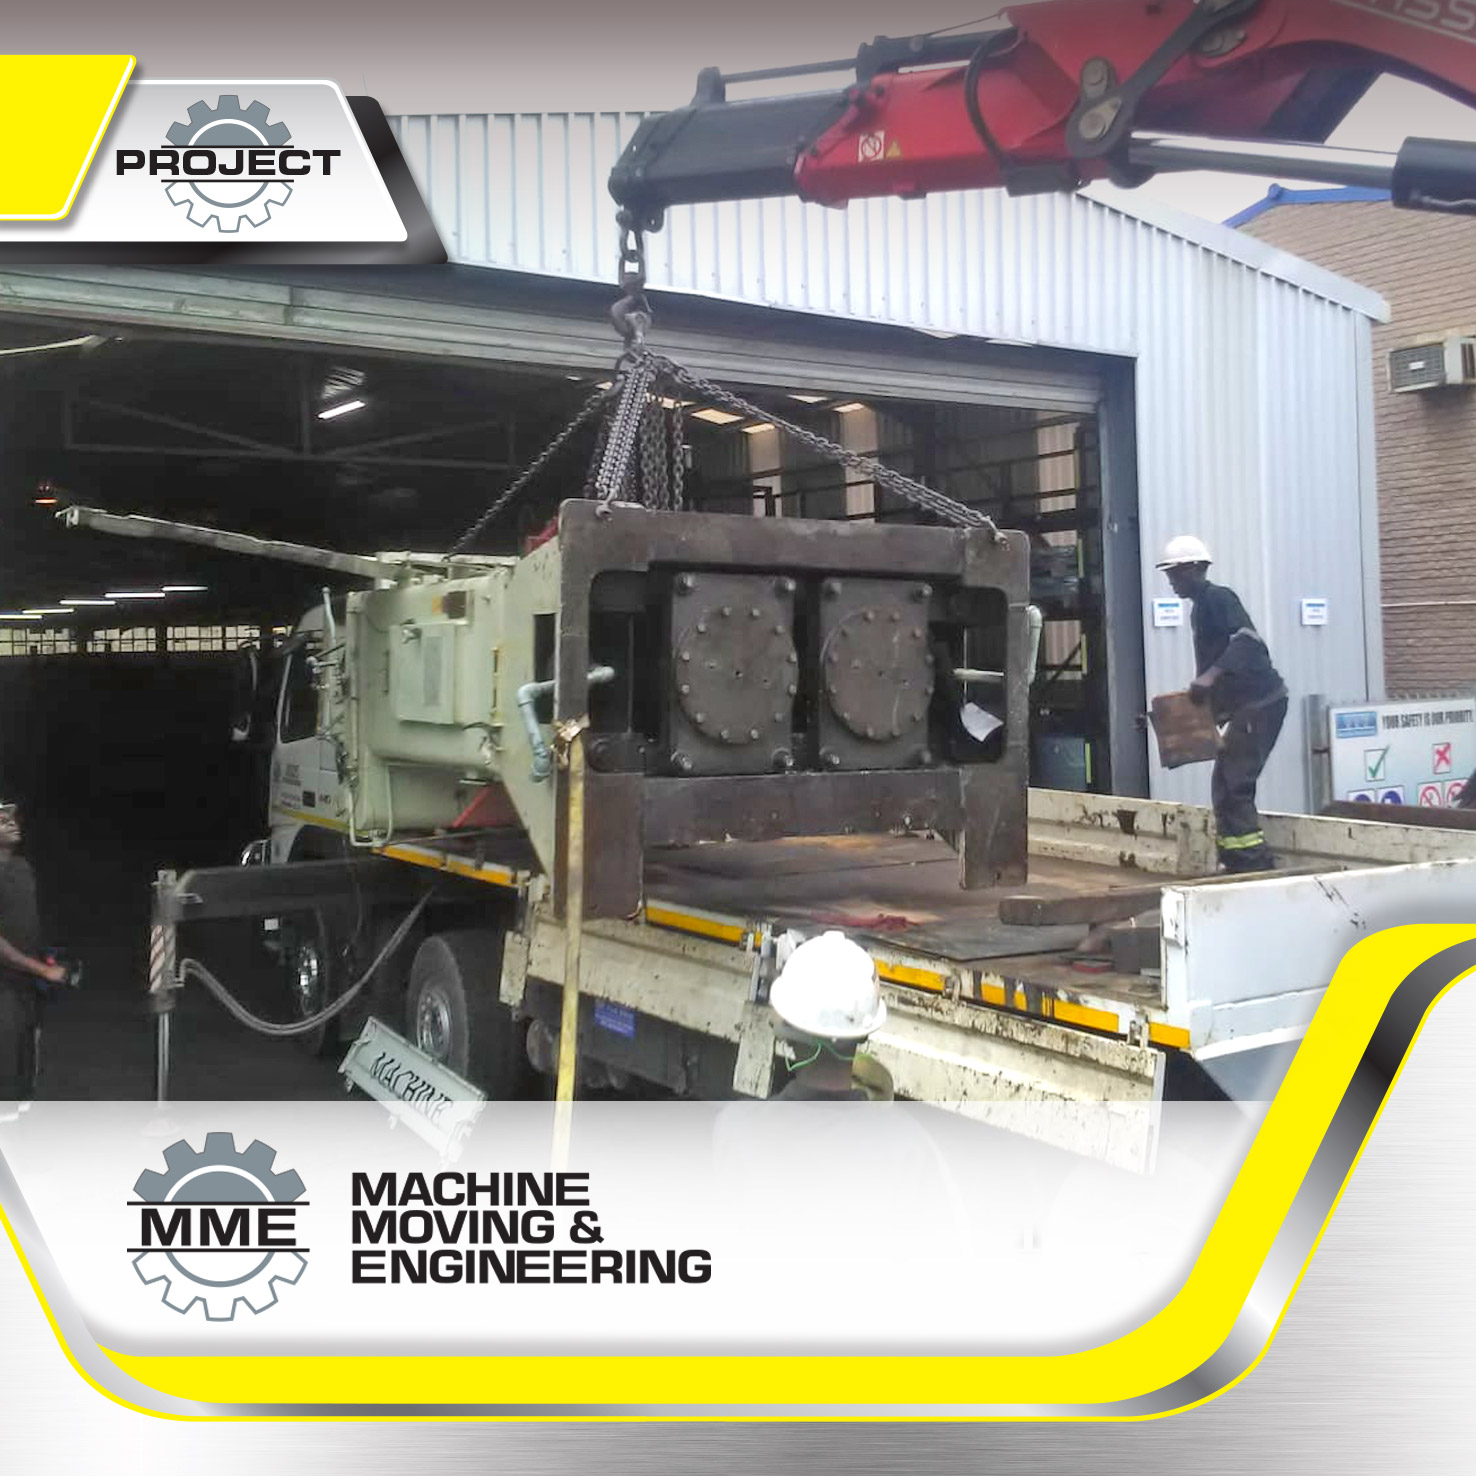 press removal mme-projects-mme-machine-moving-engineering-machinery-equipment-gauteng-kwazulu-natal-south-africa-factory-in-westmead